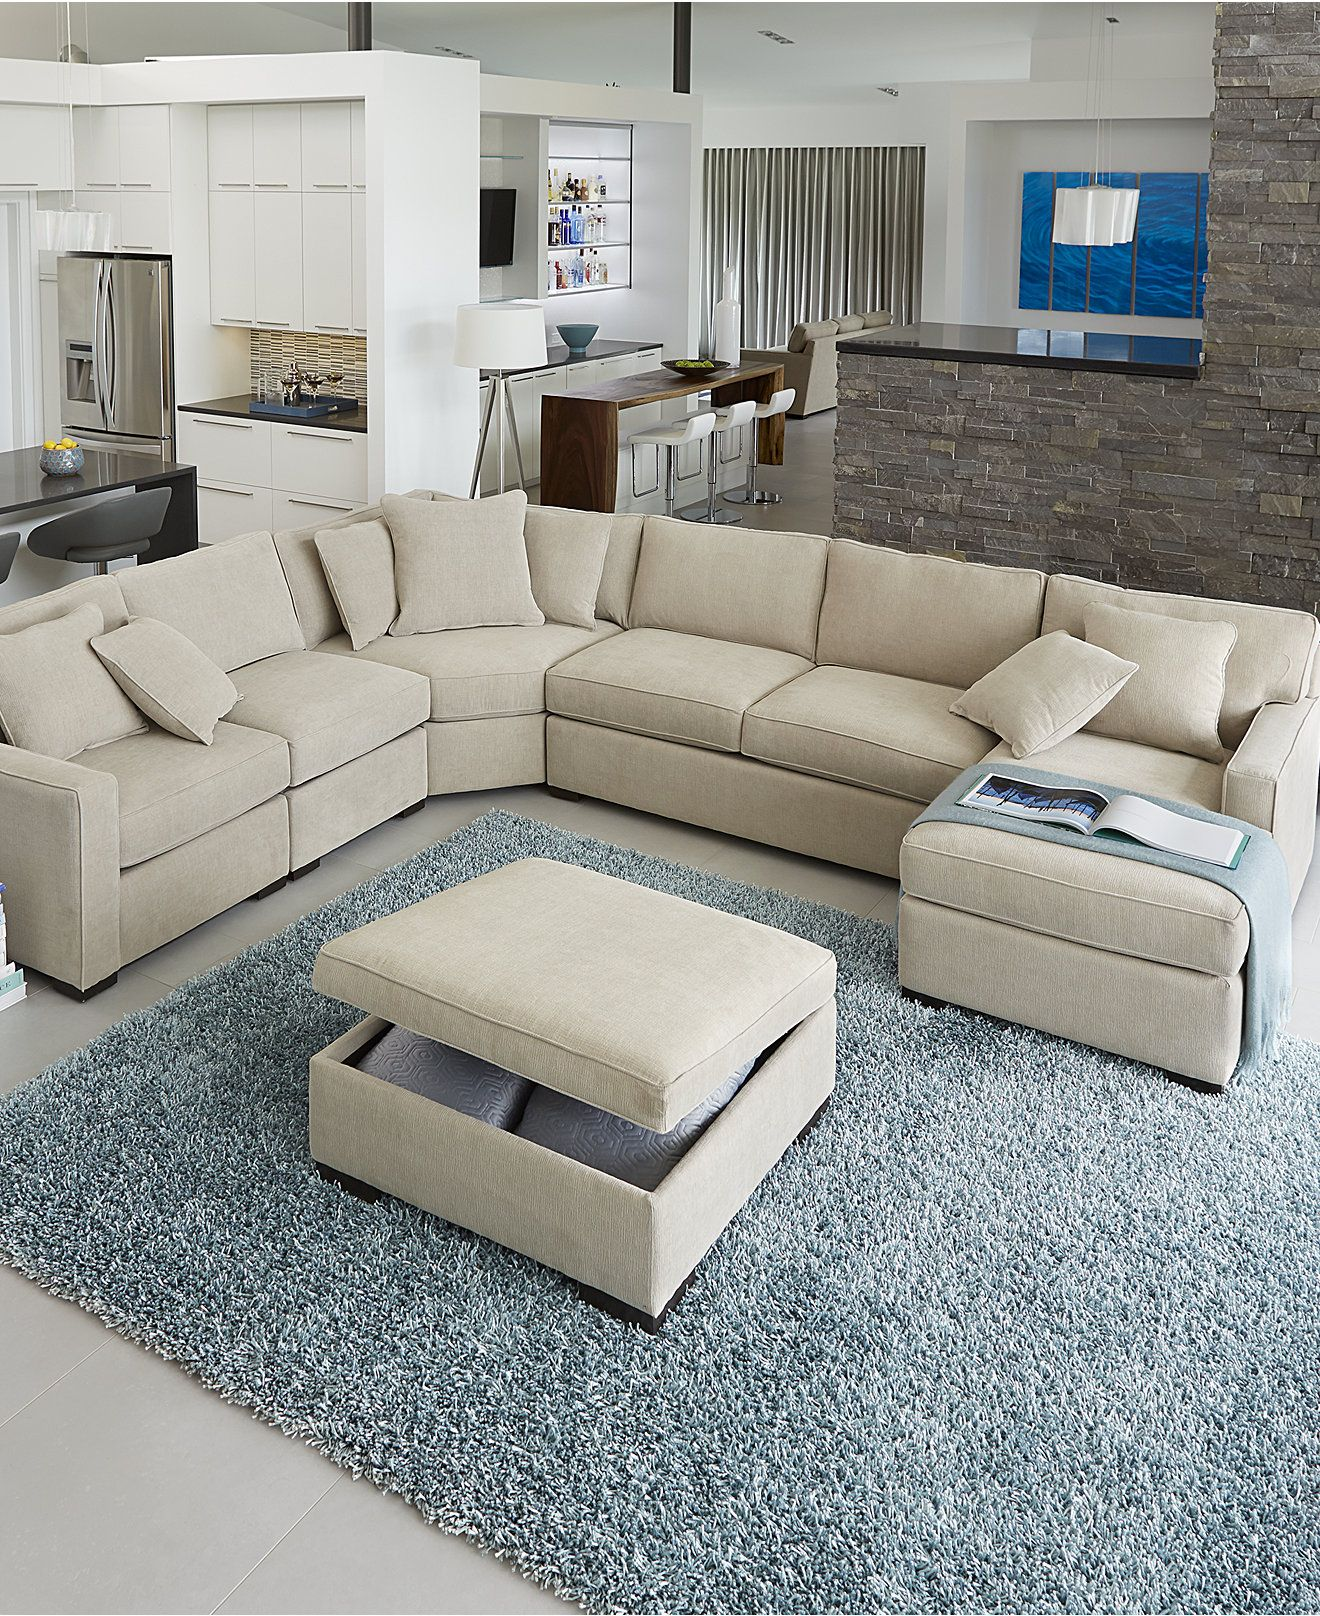 Macysfurniture Com: Radley Fabric Sectional Sofa Collection, Created For Macy